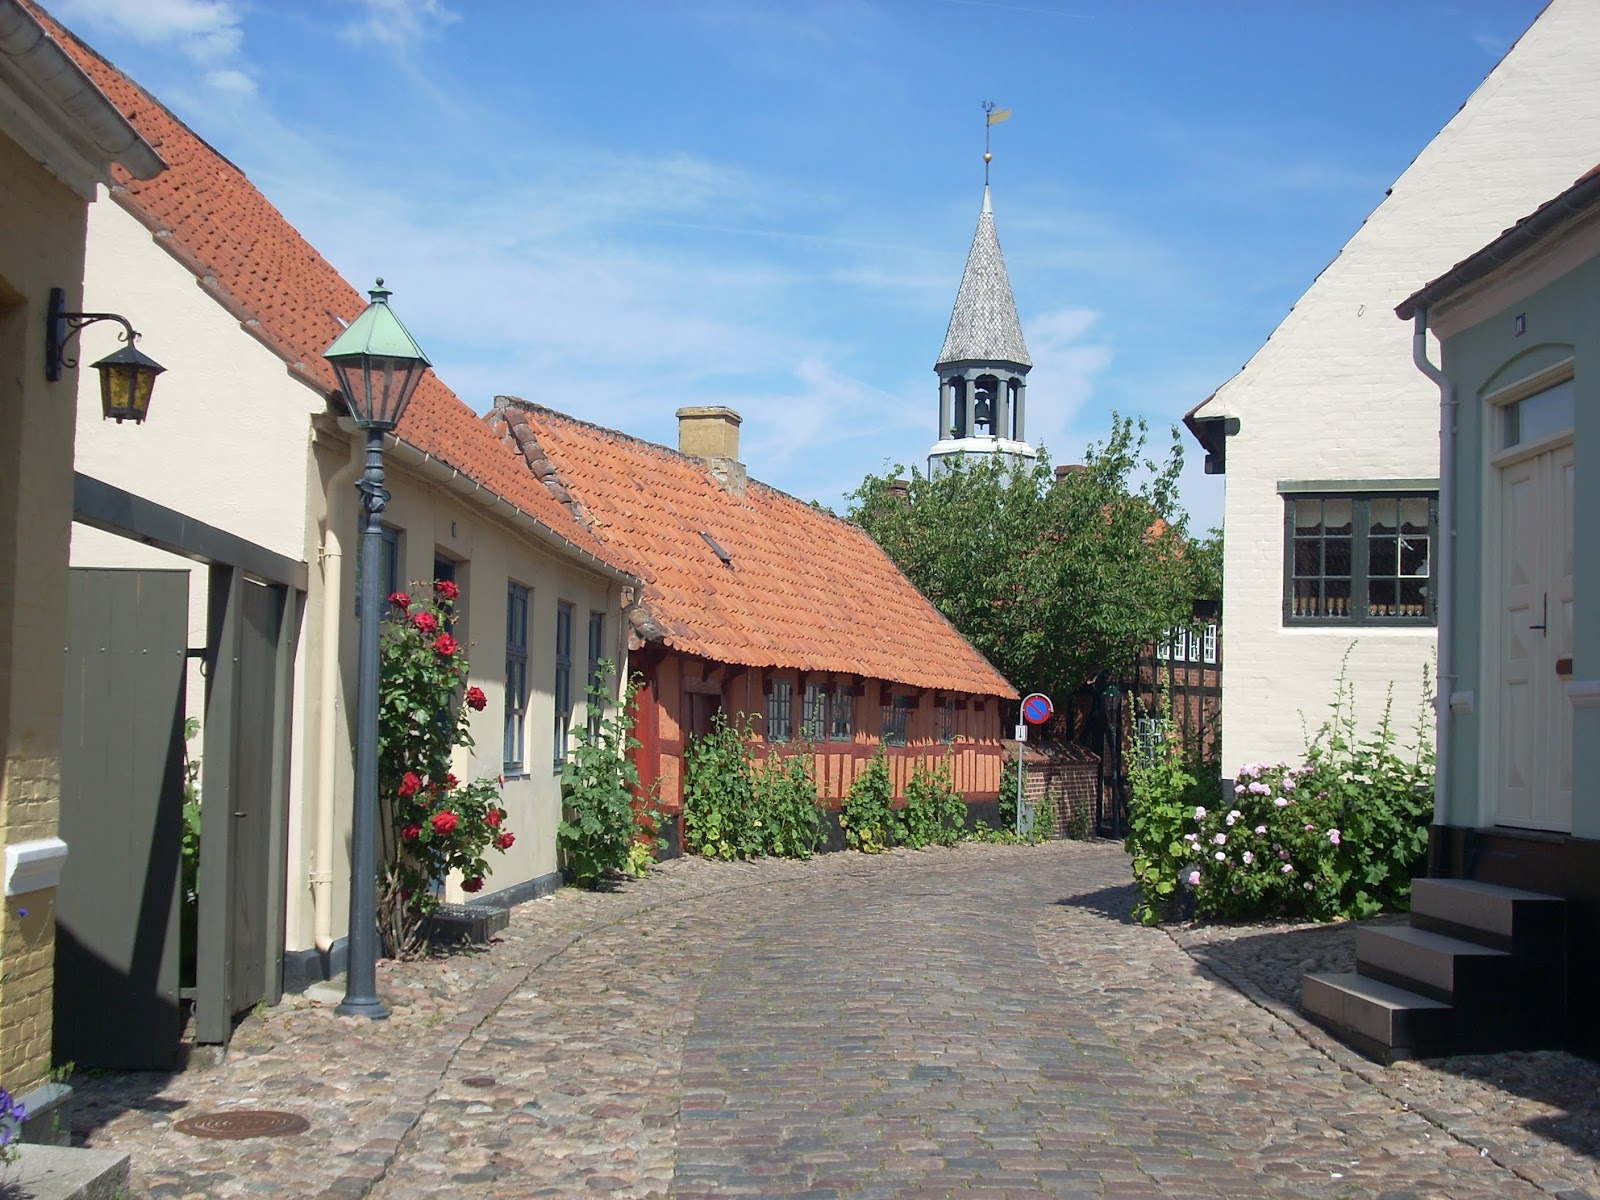 The Passport Physician Photo Of The Week Ebeltoft Denmark